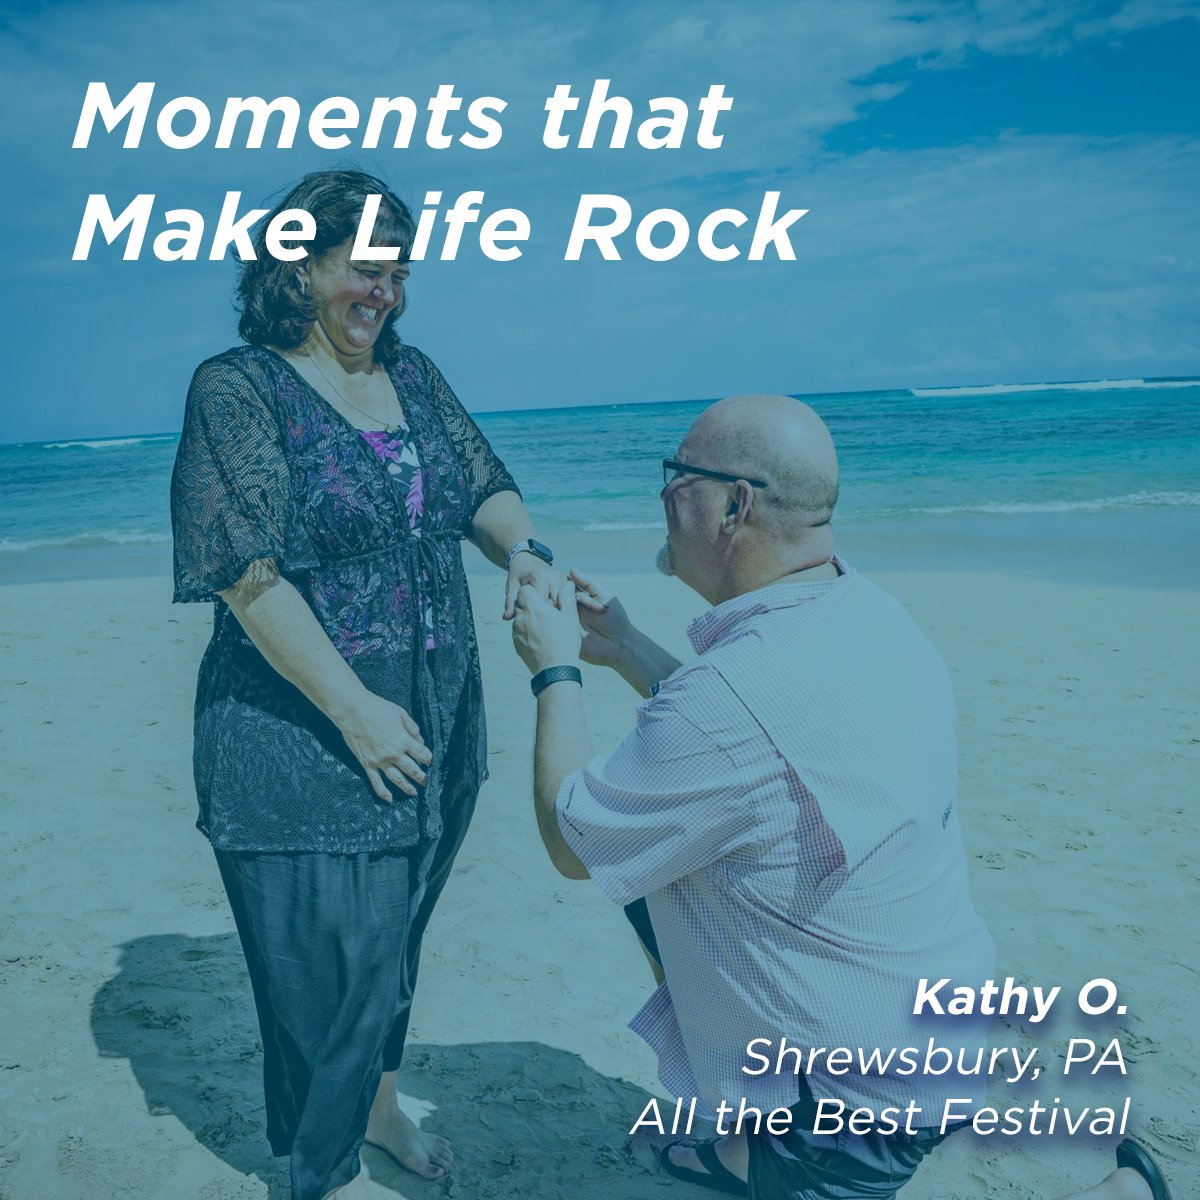 😍At 11:11 a.m. on Monday, 11/11, we got engaged in Punta Cana, D.R. during the week on All The Best Fest. - Kathy O. Read on to learn all about Kathys engagement during our #AllTheBestFest sixthman.net/moments #SXMLiveLoud